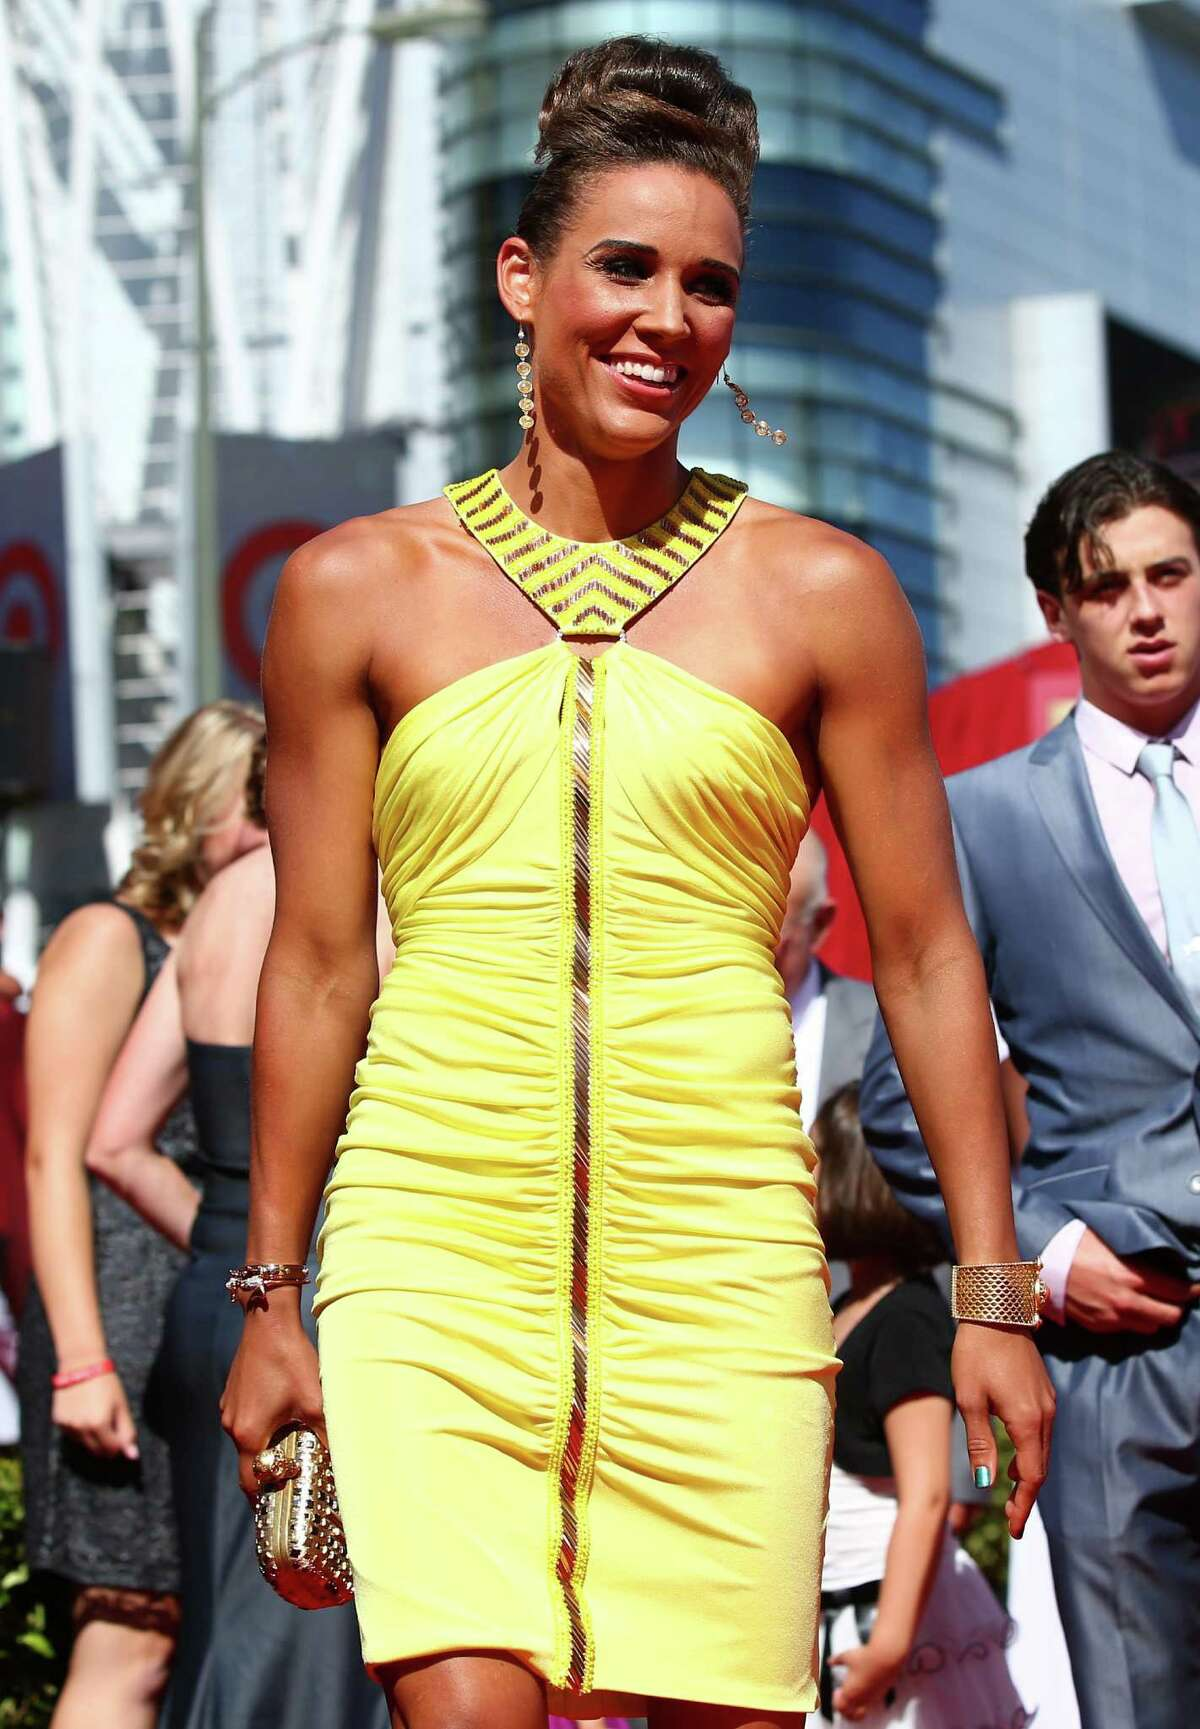 LOS ANGELES, CA - JULY 17: Track and Field athlete Lolo Jones attends The 2013 ESPY Awards at Nokia Theatre L.A. Live on July 17, 2013 in Los Angeles, California. (Photo by Christopher Polk/Getty Images for ESPY) ORG XMIT: 173416763